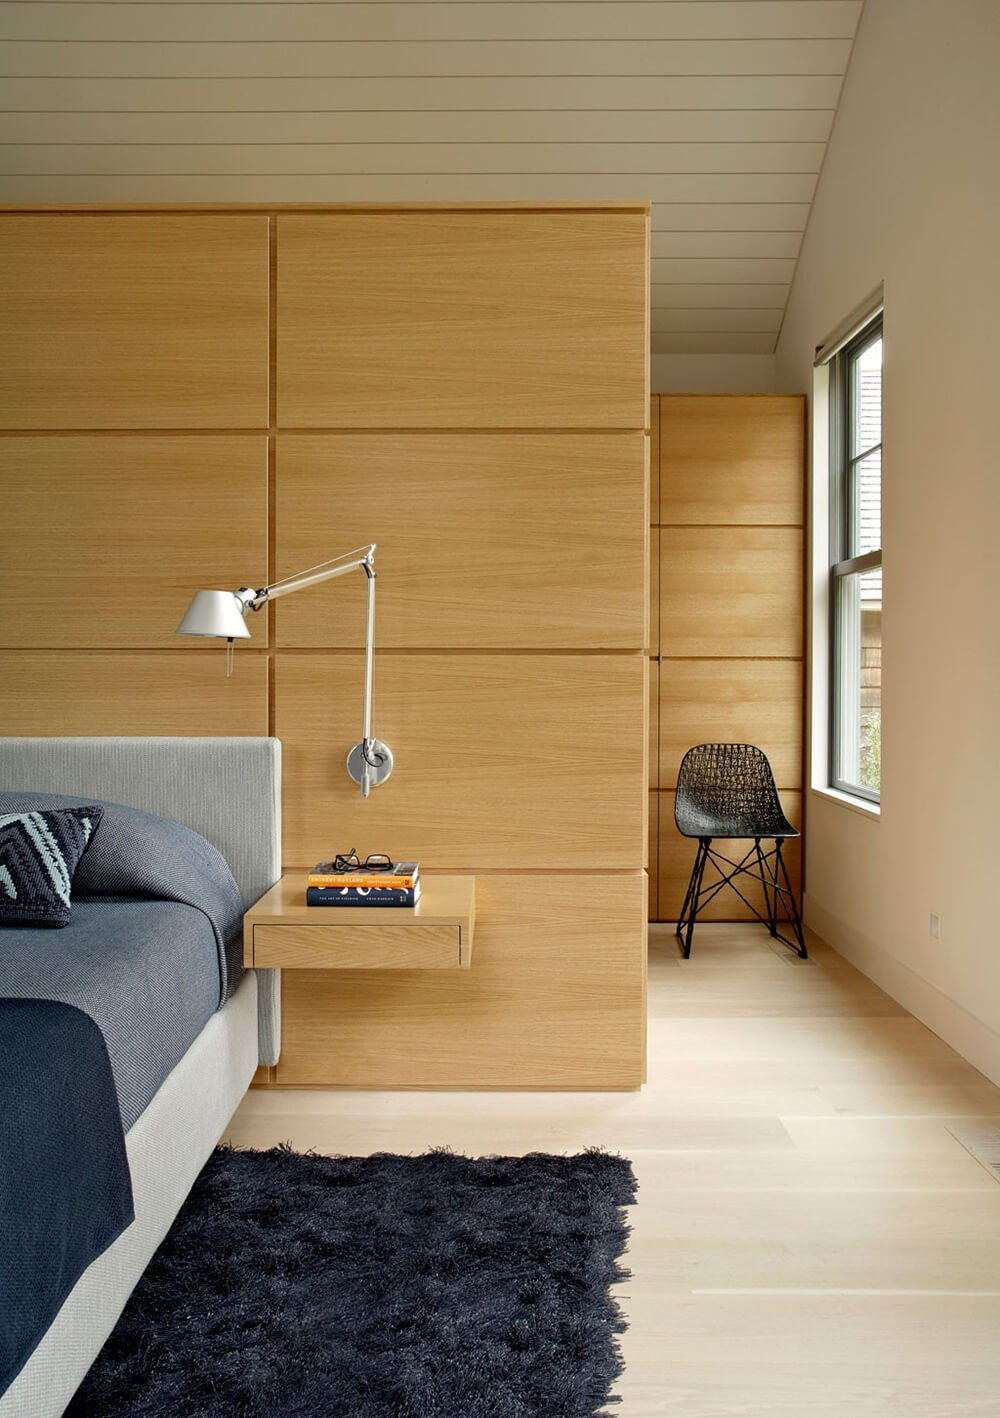 In the bedroom of this house, the light hardwood floor remains prevalent. The walls have a rich glossed wood paneling that compliments the hardwood floors and the dark blue furnishings in this room. We can recognize a modern style from the unique bedside shelf, as well as from the adjustable lamp mounted to the wall.